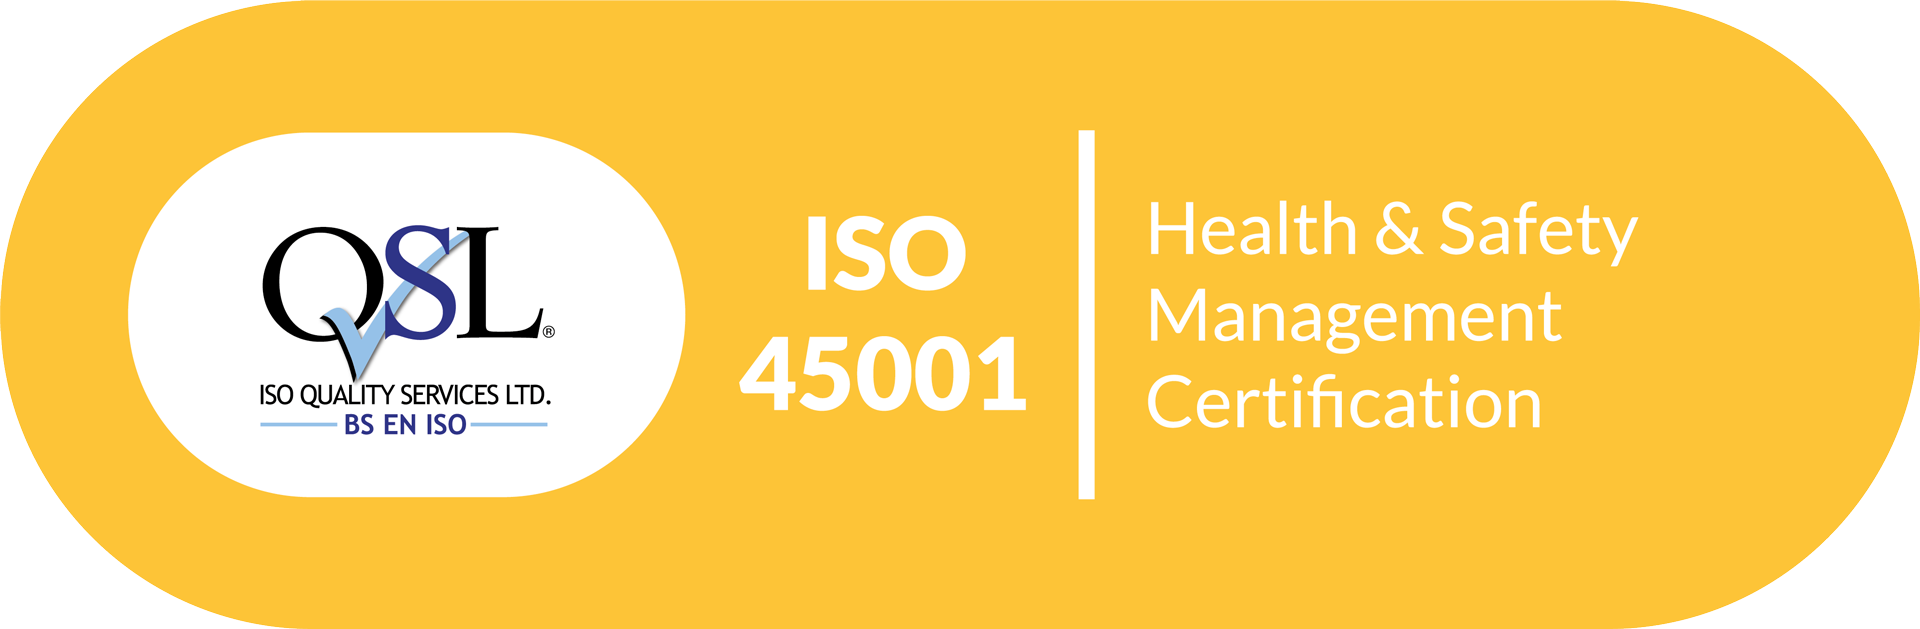 QSL Health & Safety Certificate